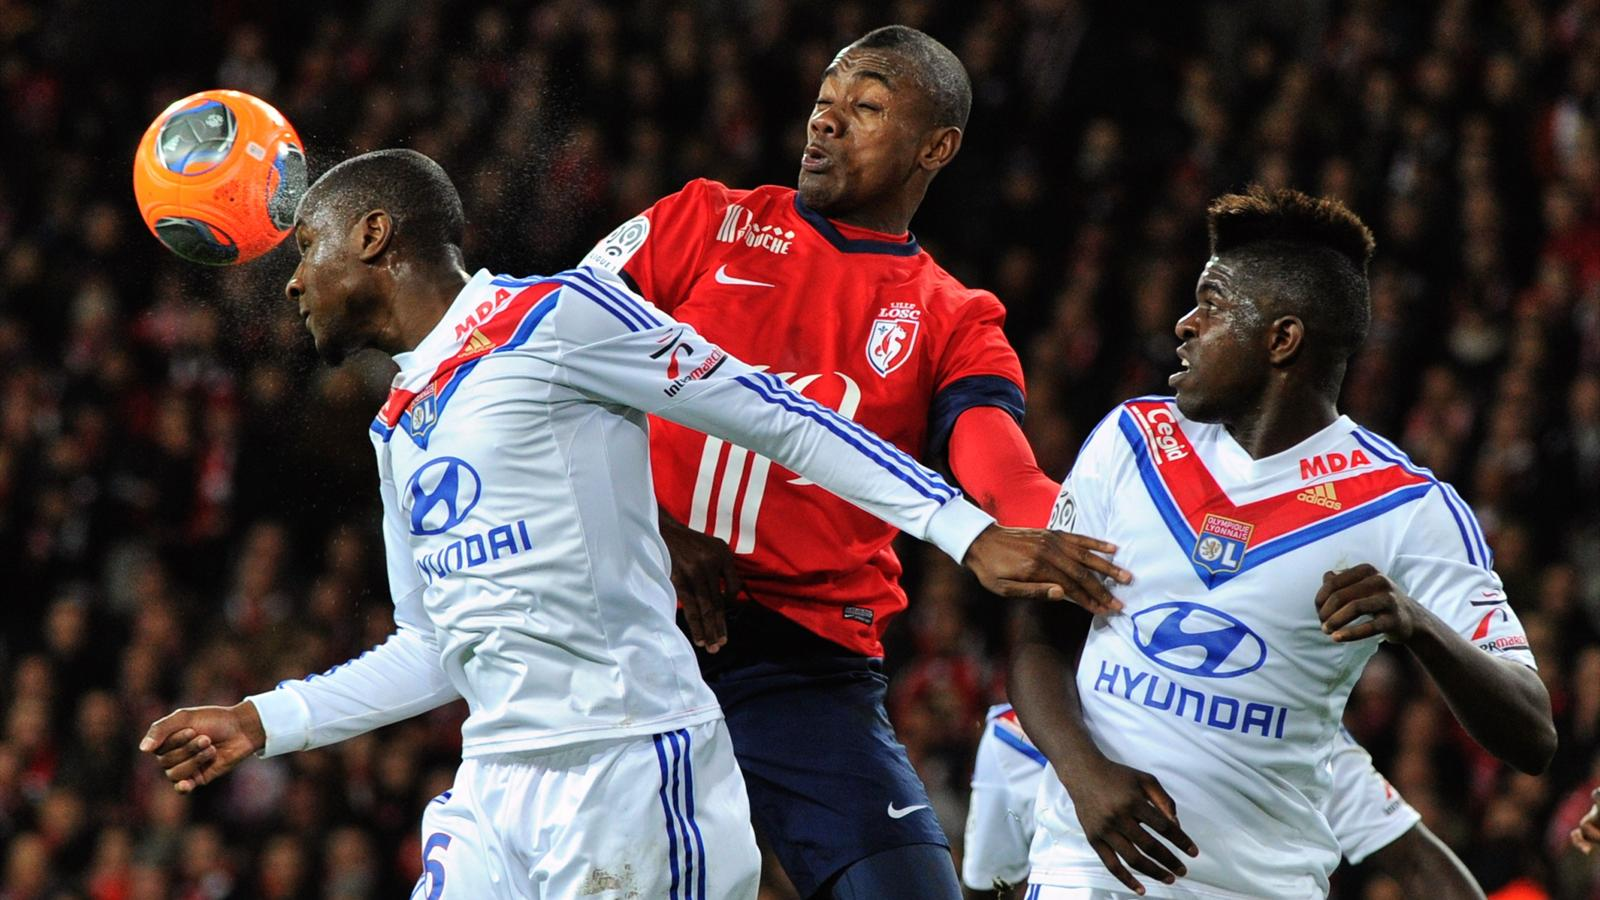 Match Olympique Lyonnais vs LOSC Lille en direct live streaming